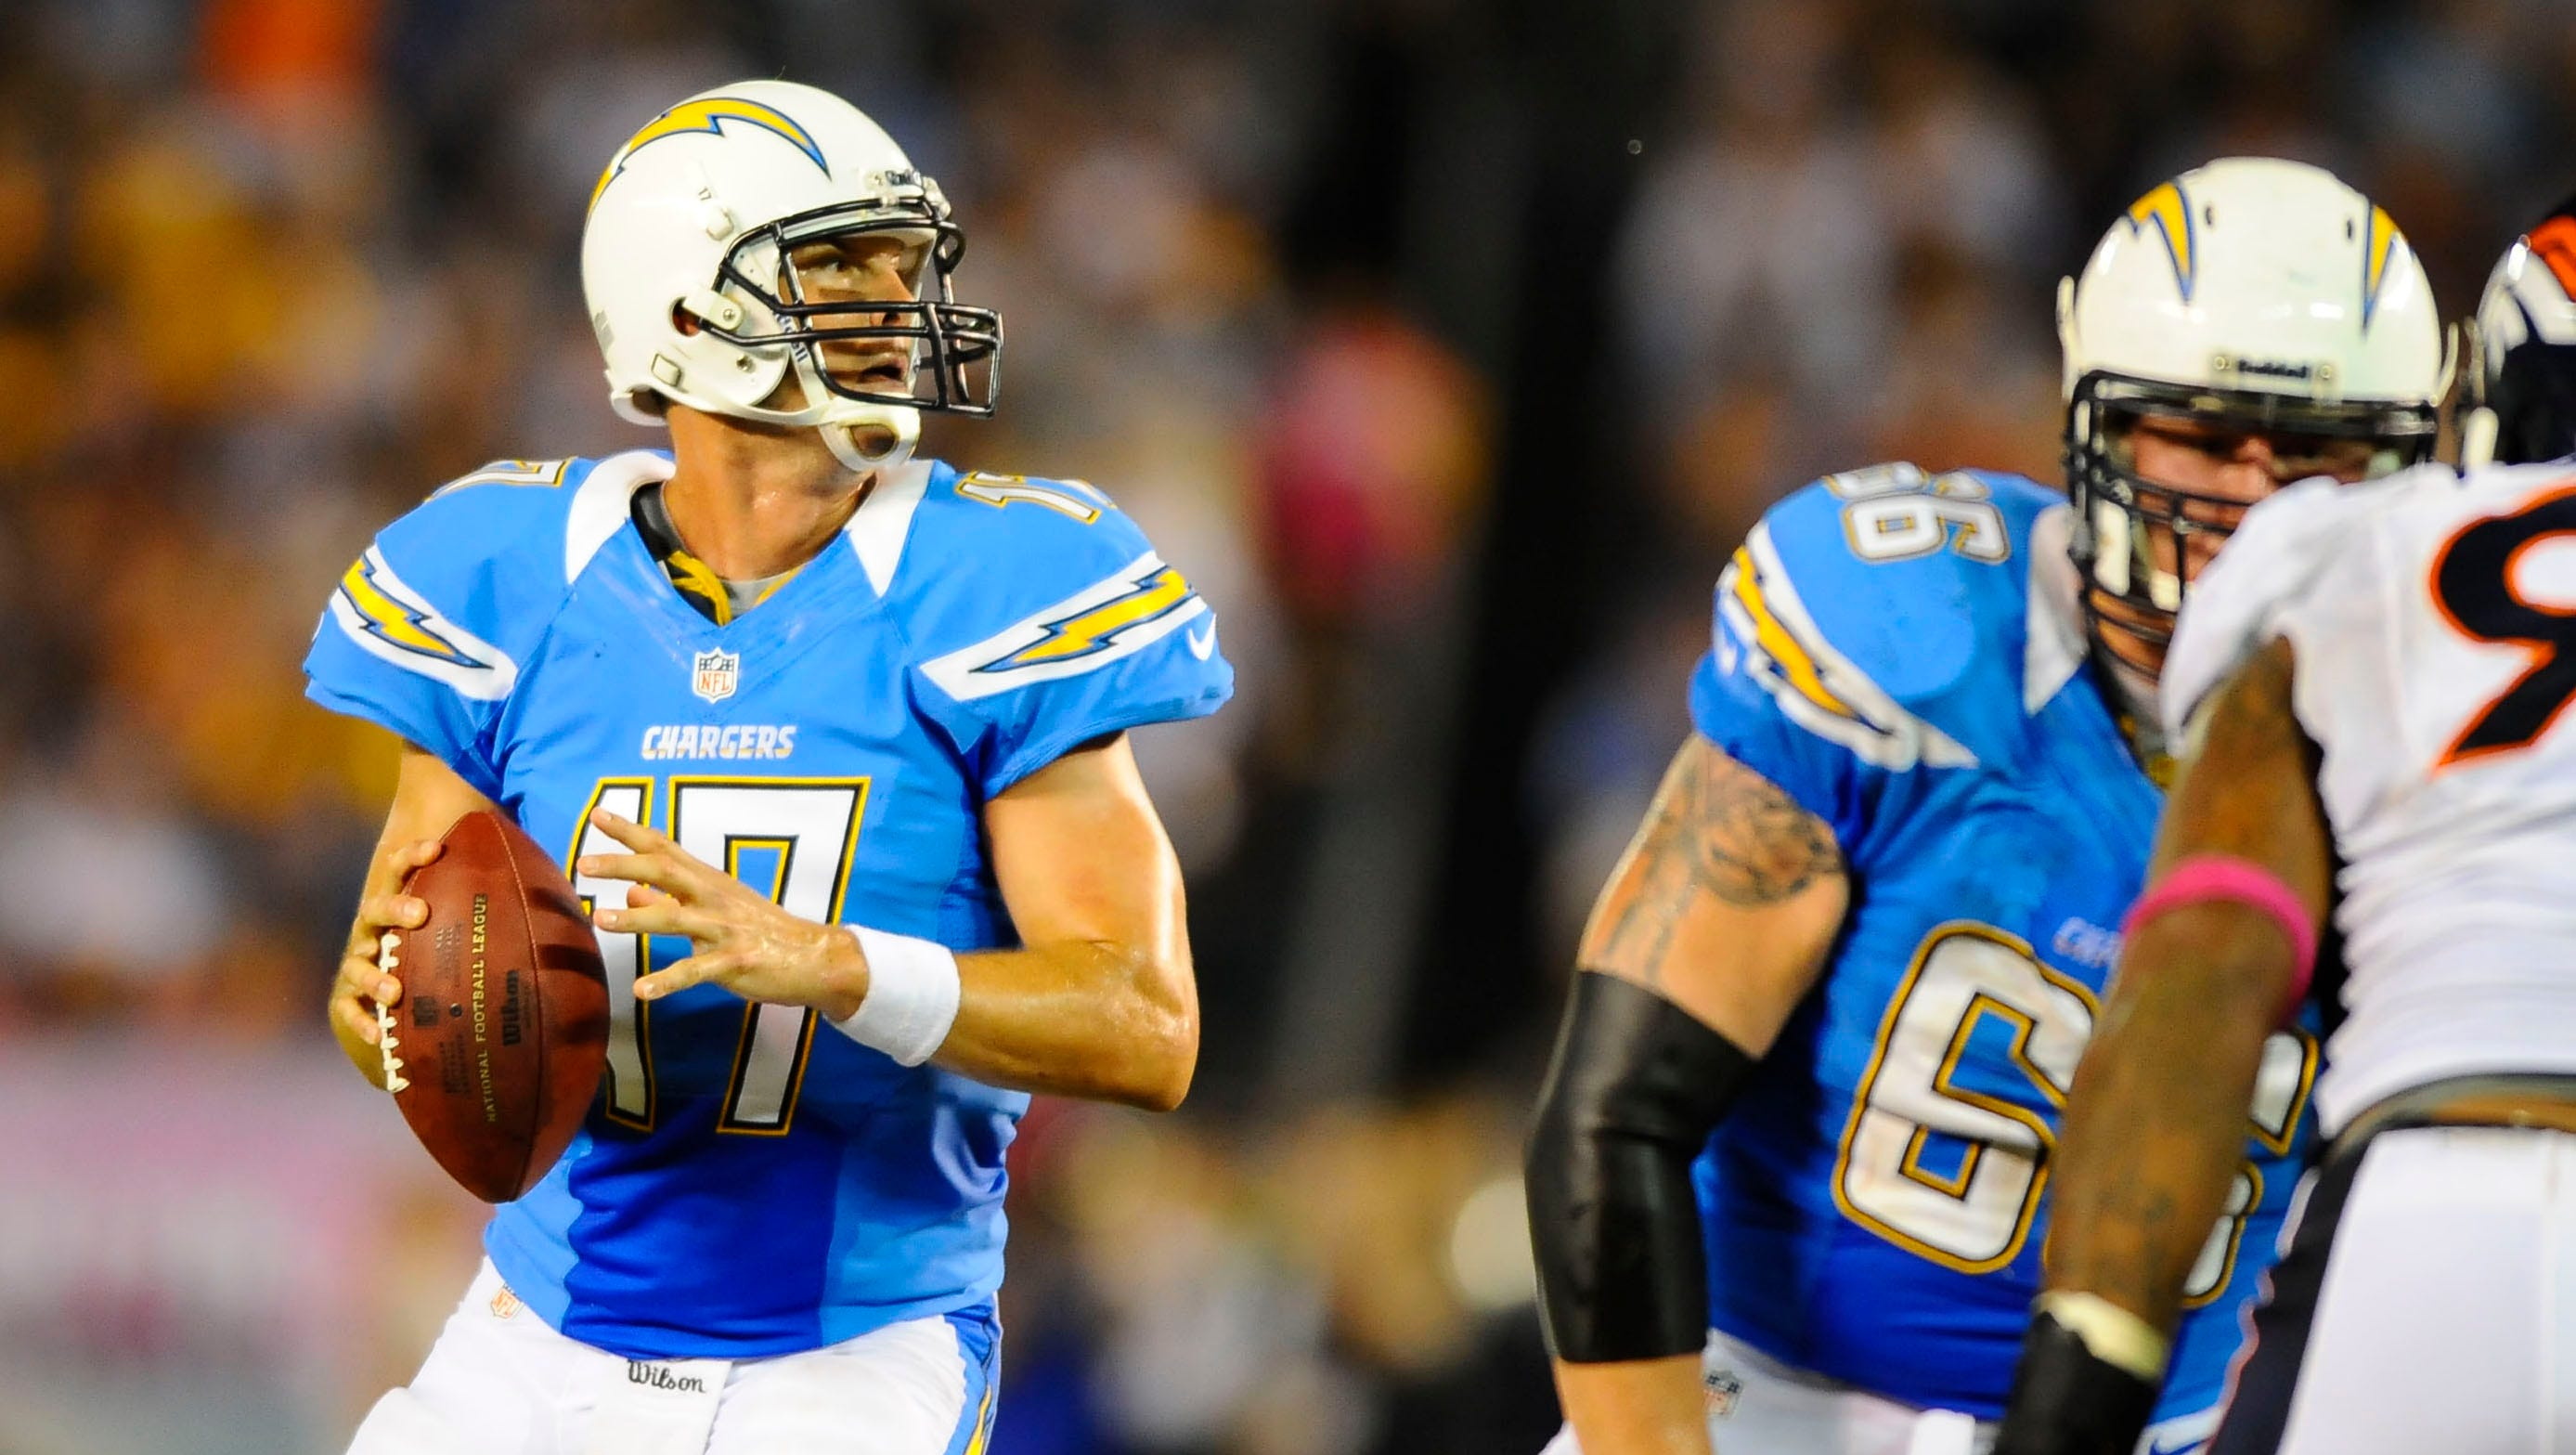 20. Philip Rivers, San Diego Chargers